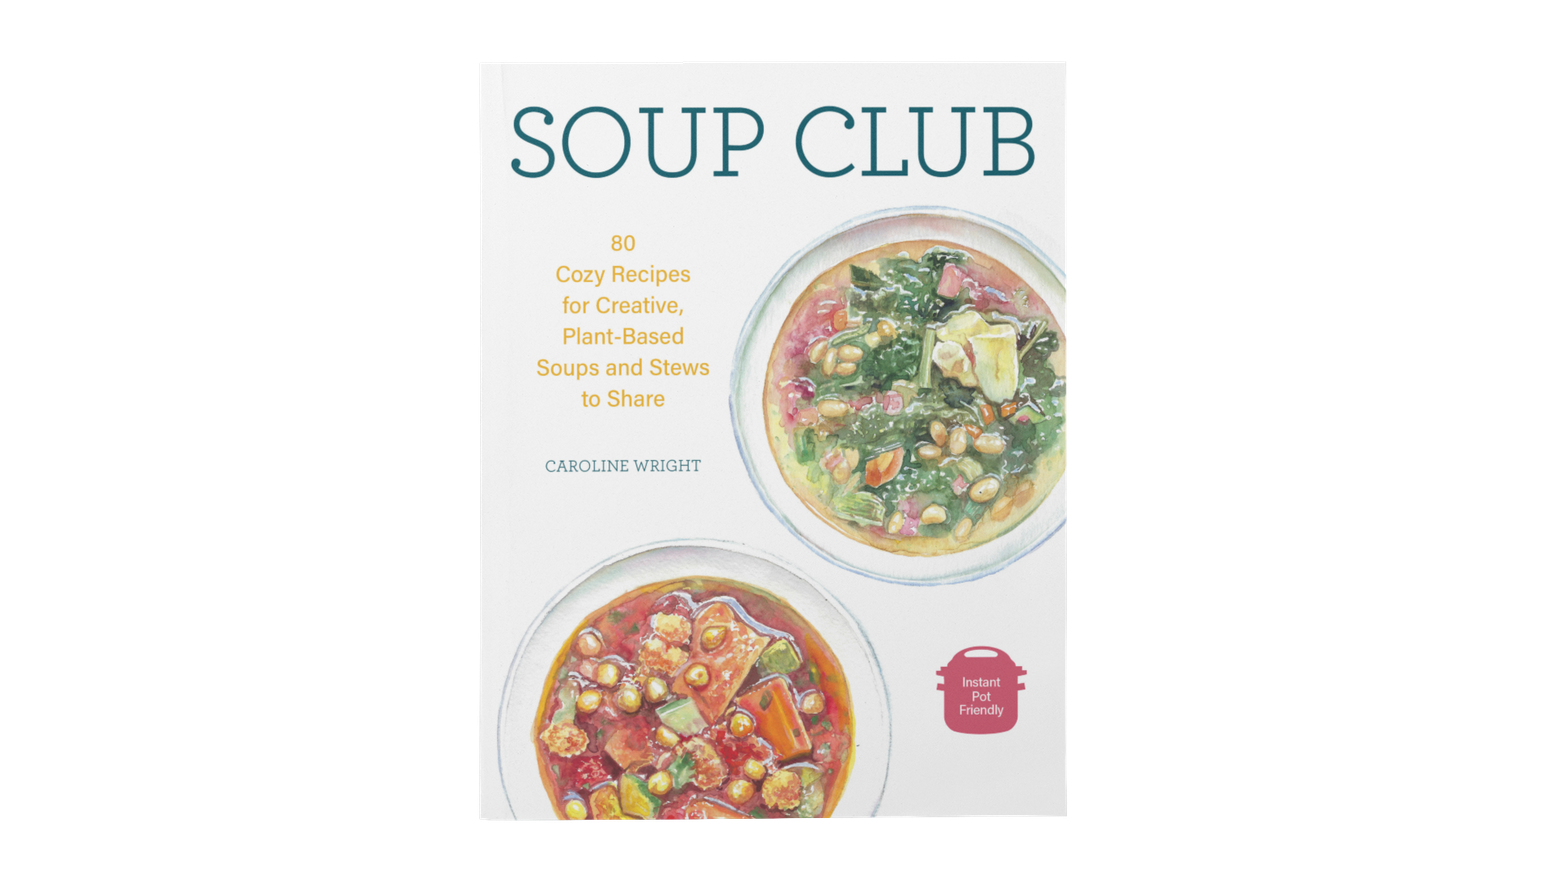 An independent cookbook of creative plant-based soup recipes by cookbook author Caroline Wright.